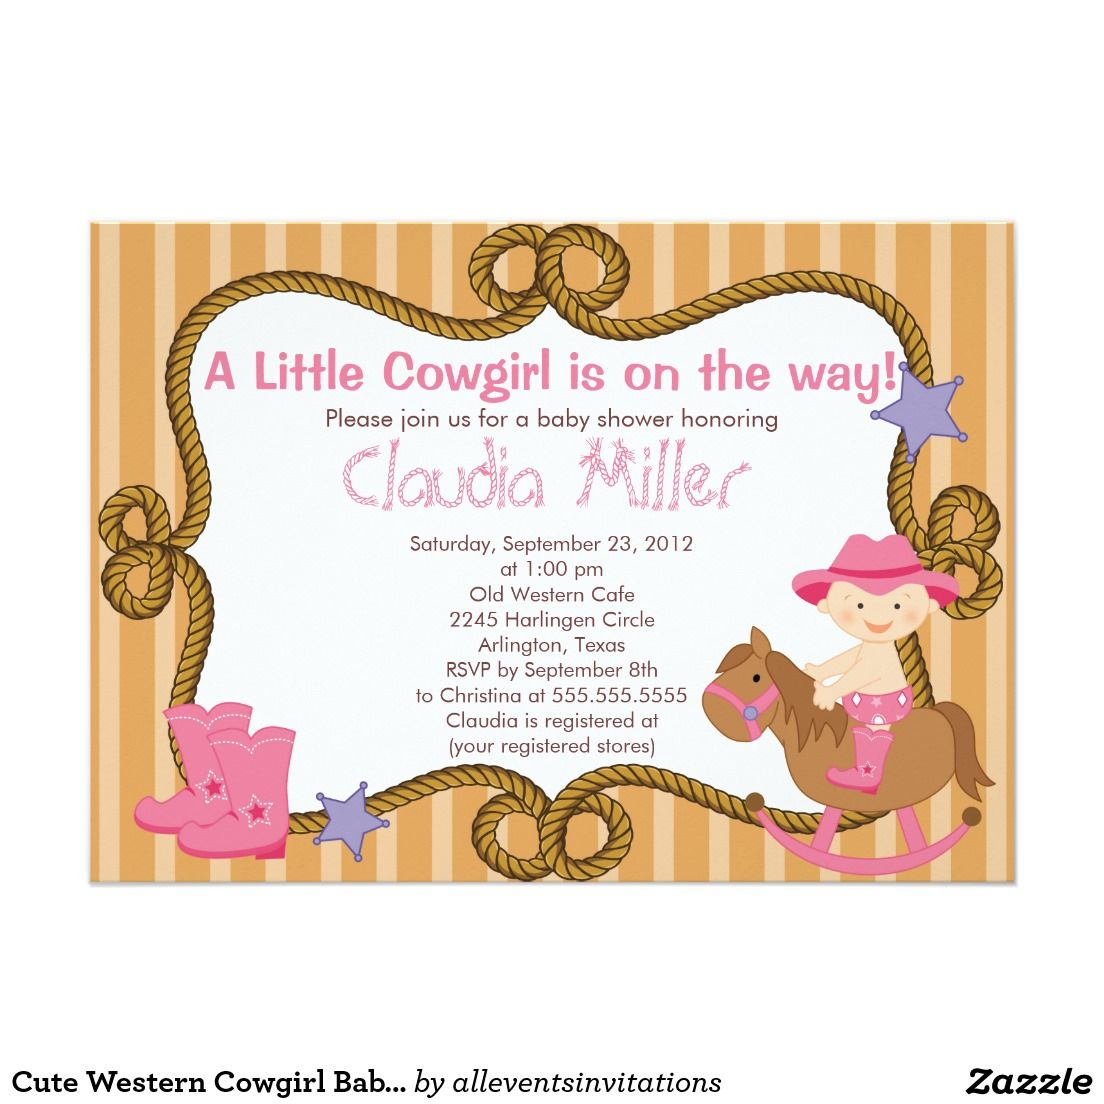 Cute Western Cowgirl Baby Shower Invitation 5\